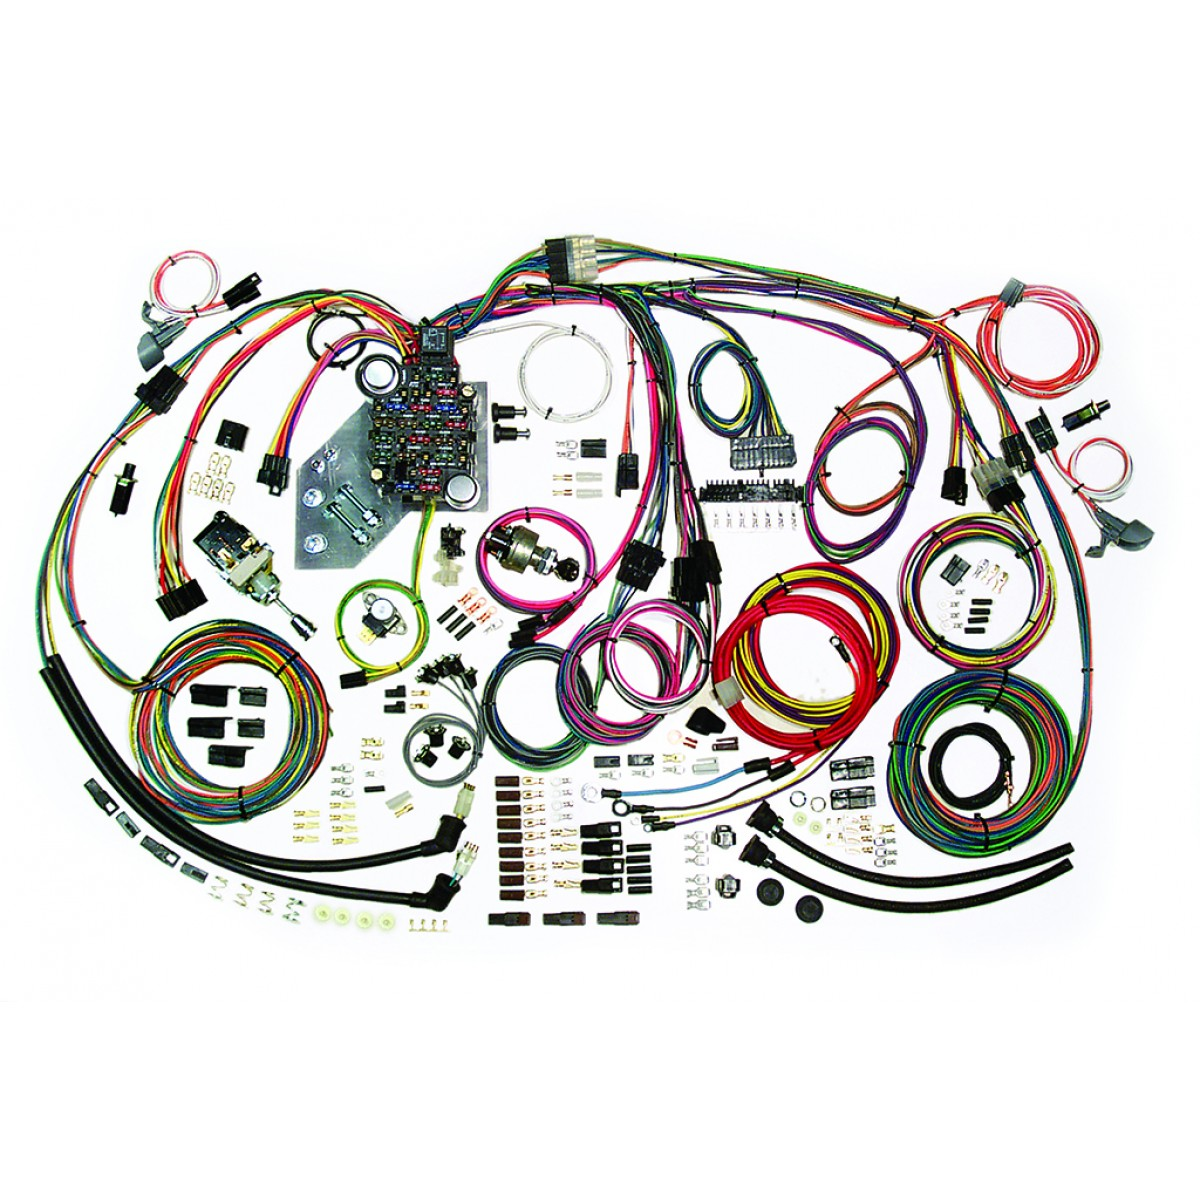 Chevrolet Truck Wiring Harness Free Diagram For You 1966 Mopar Ignition How To Lower A 1955 Autos Post 2004 Silverado